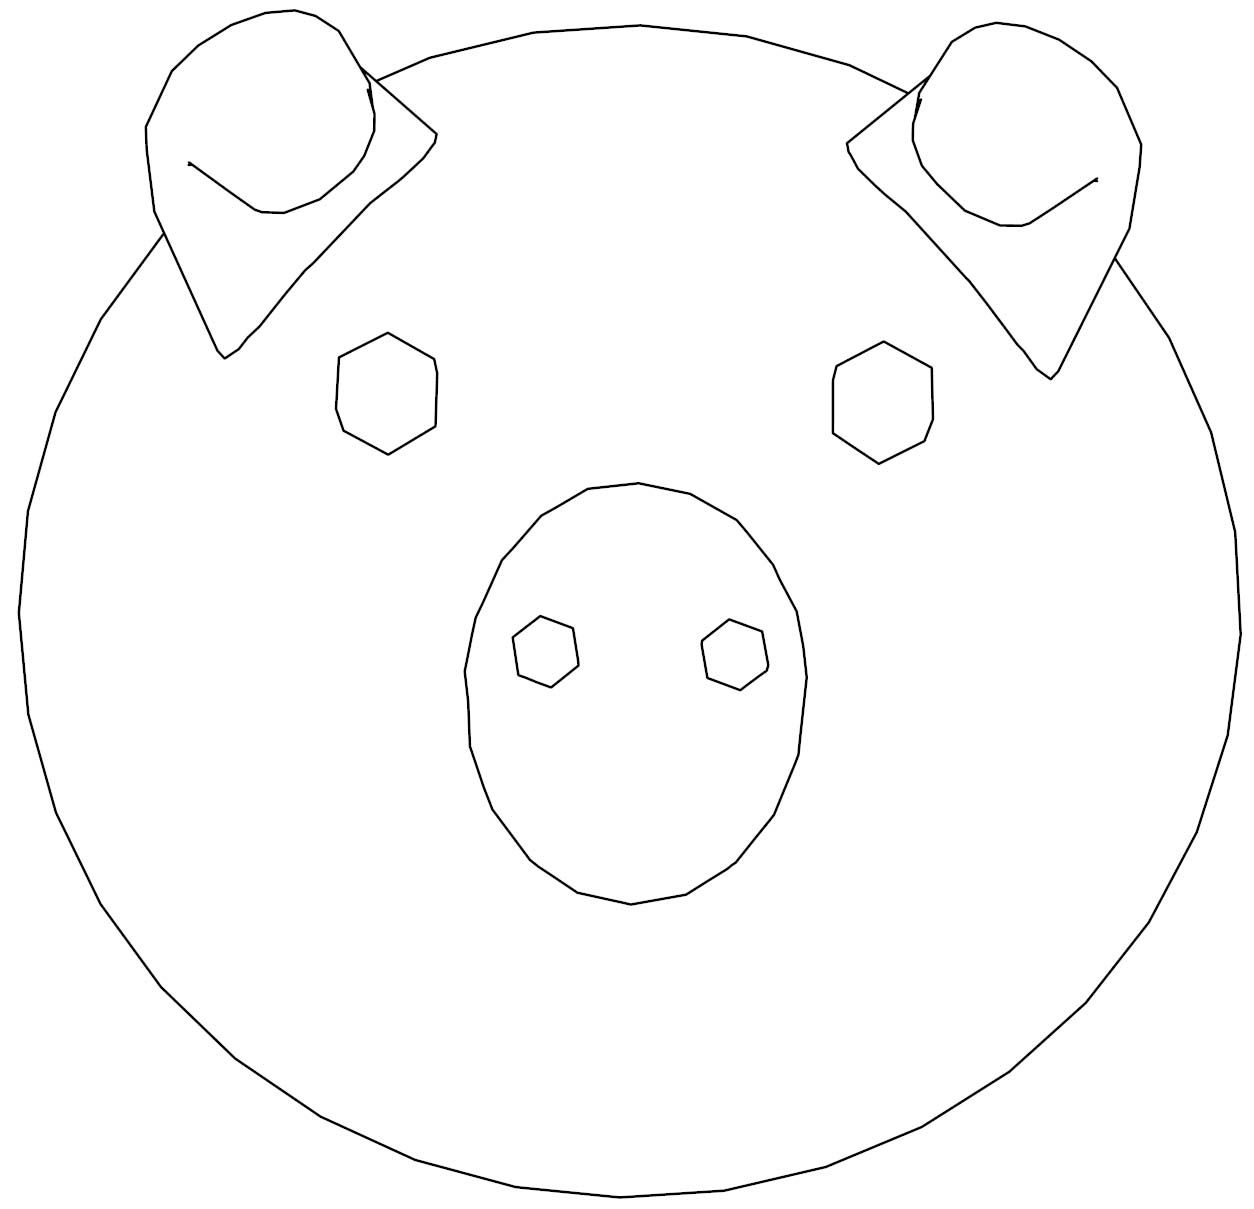 Awesome Pig Face Coloring Page Cartoon Coloring Pages Coloring Pages Flower Coloring Pages